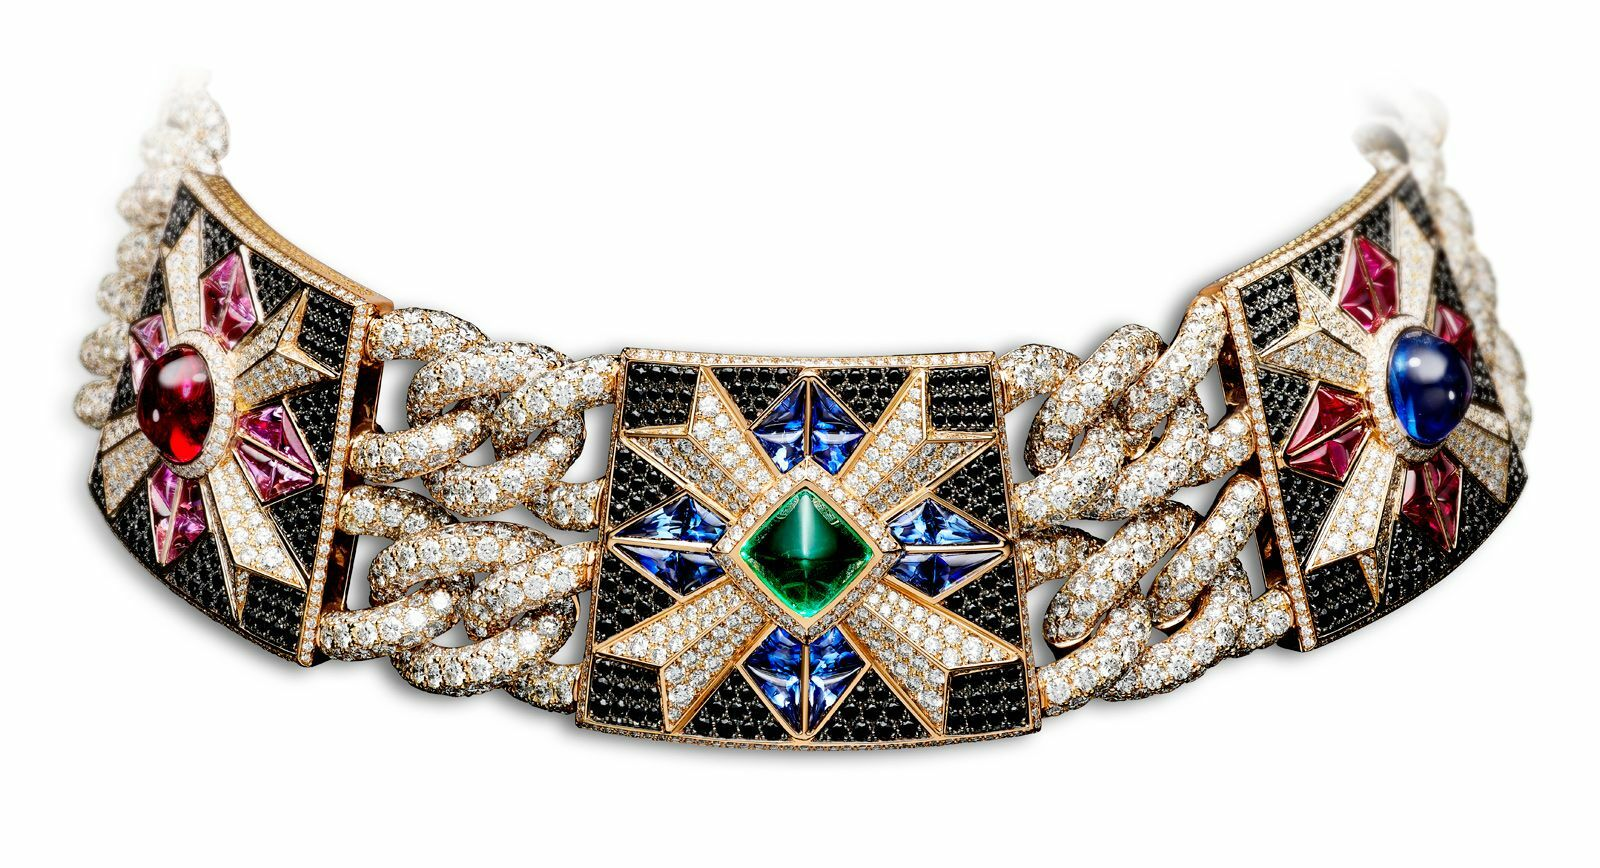 Giampiero Bodino: High Jewellery Should Be Conceived in Modern Ways